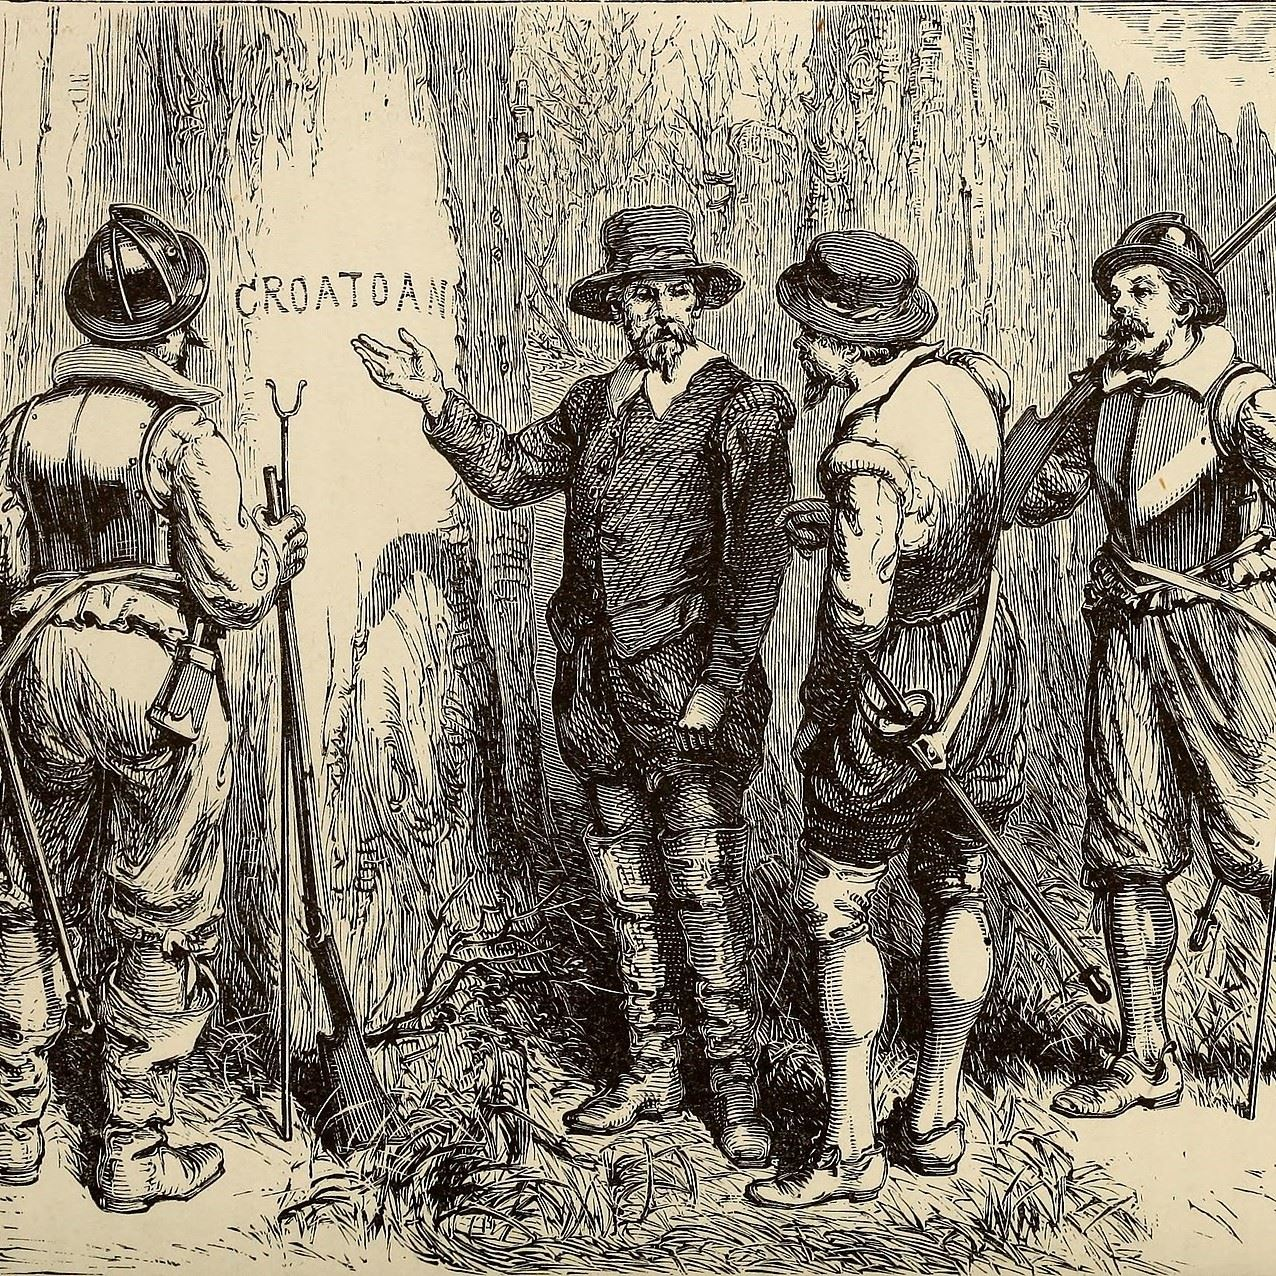 Square Croatan Engraving